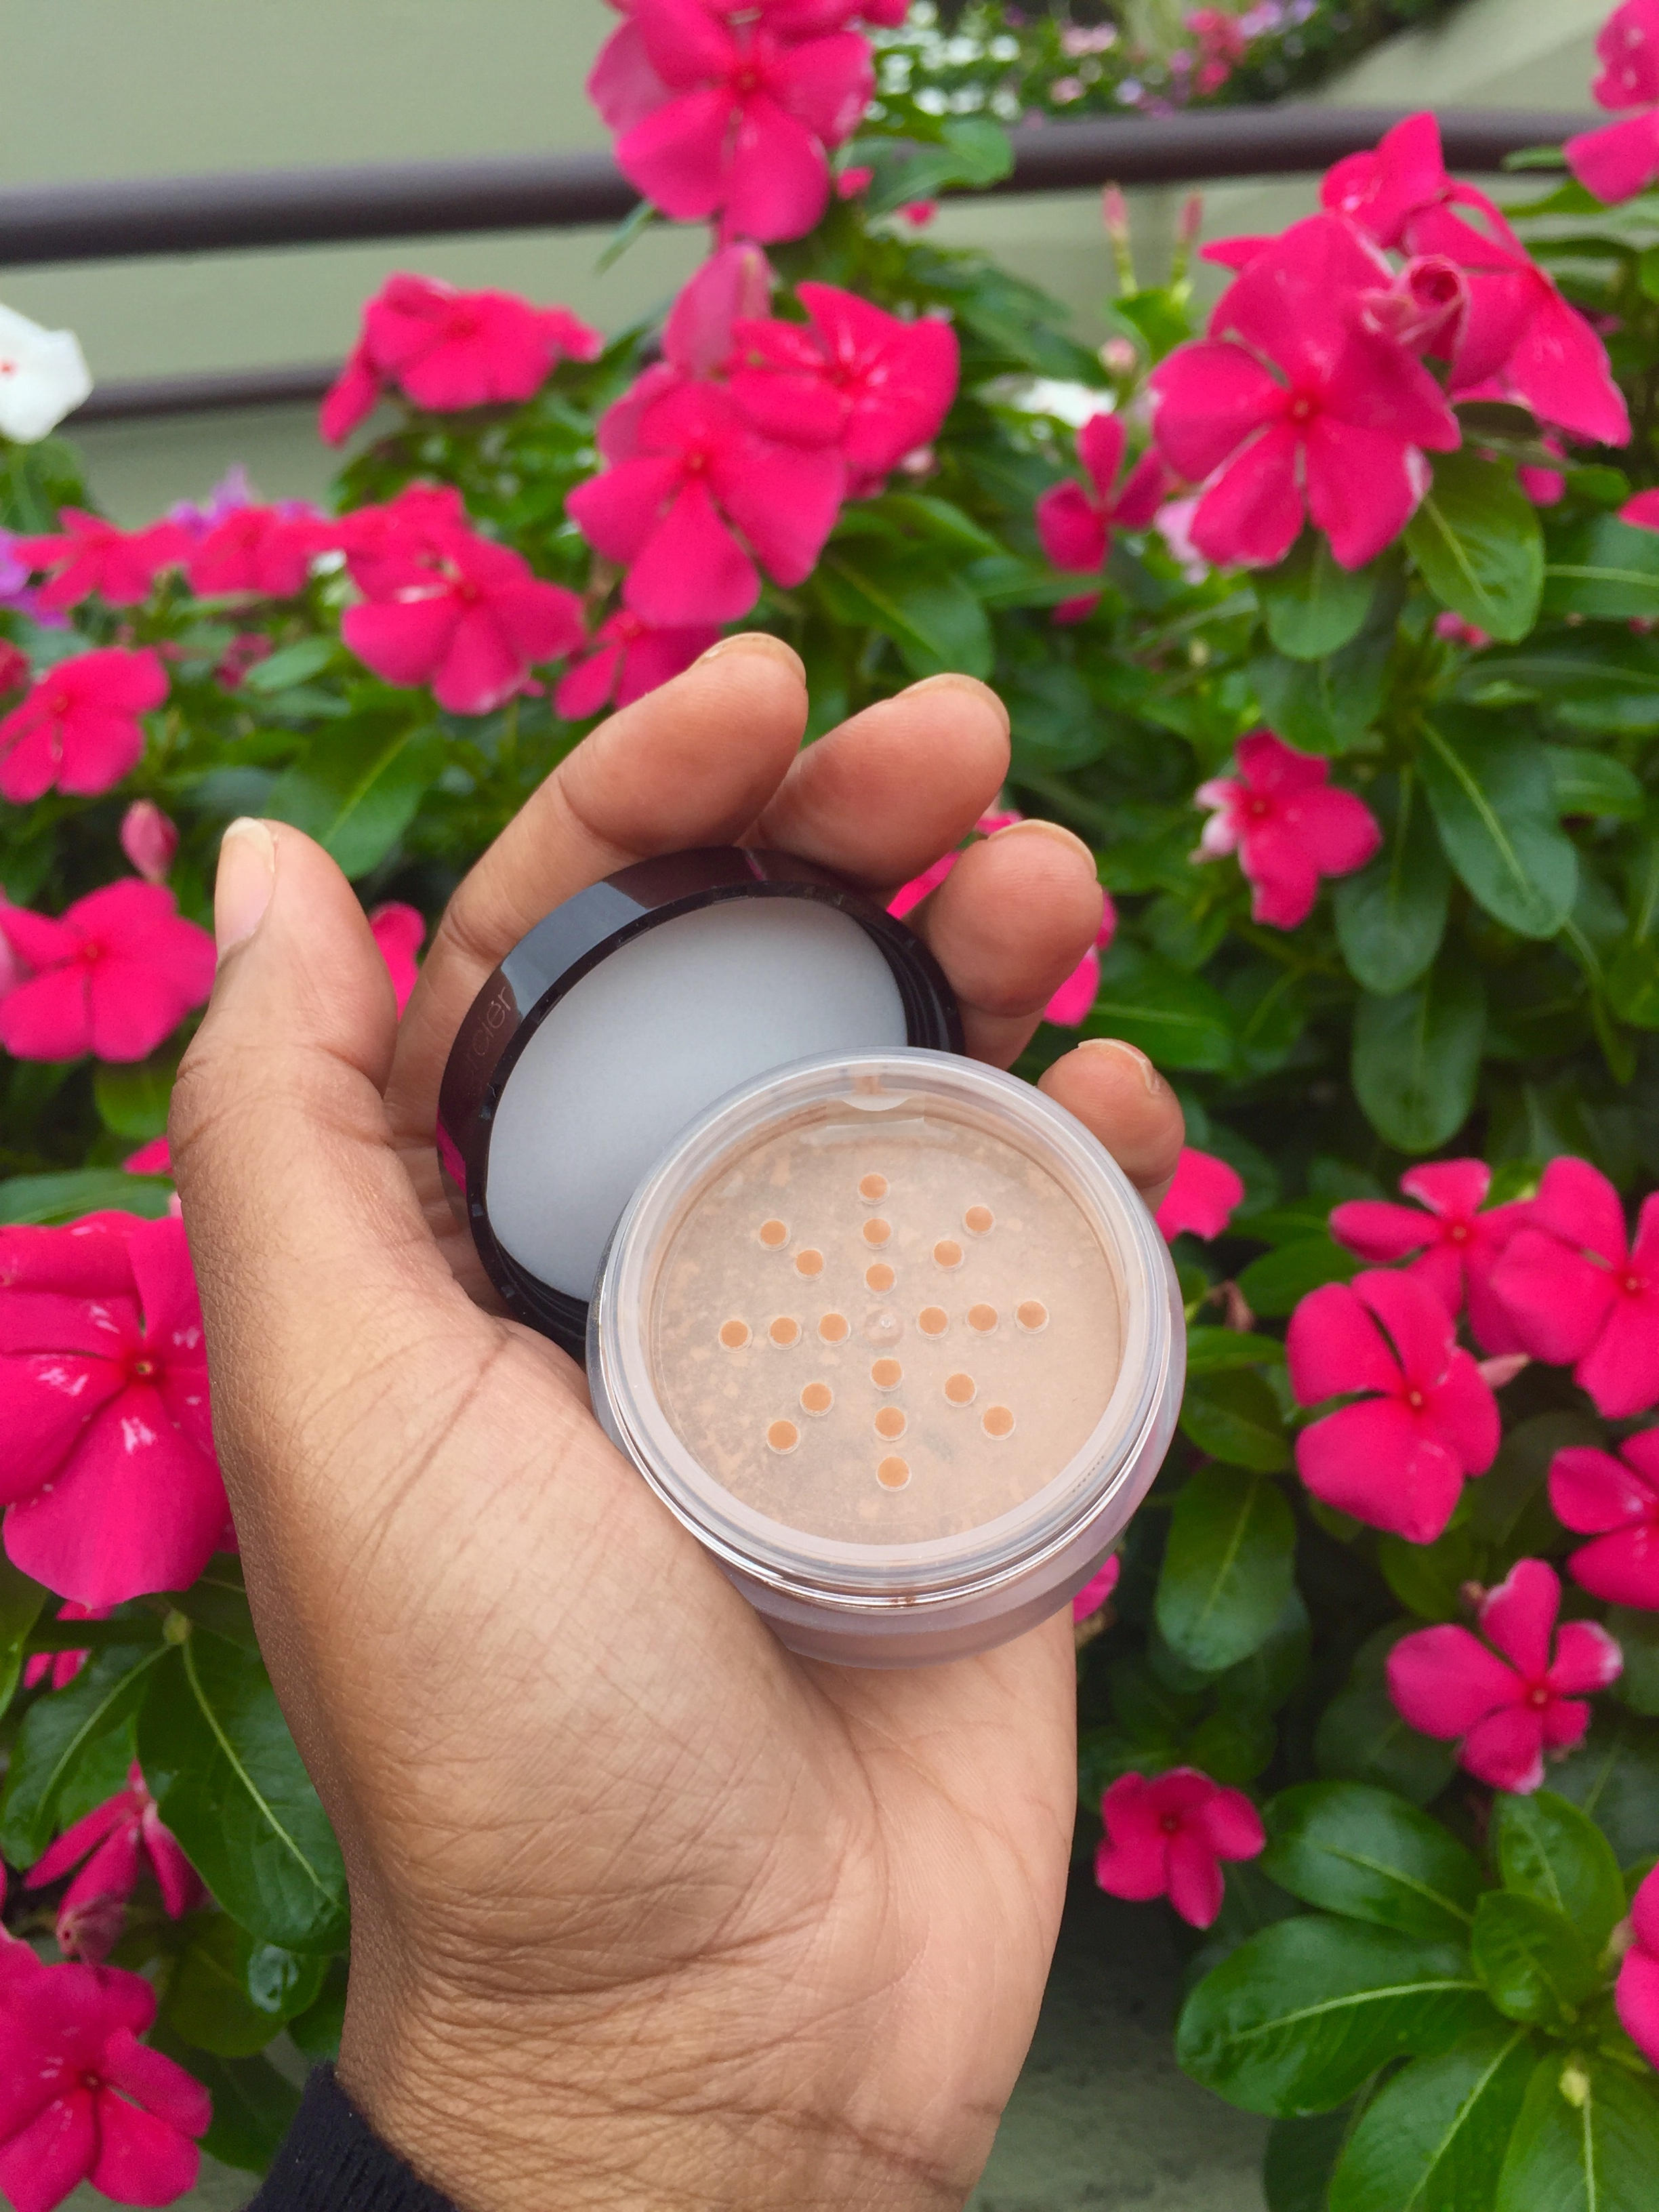 Laura Mercier Translucent Loose Setting Powder Glow VoxBox Review.jpg